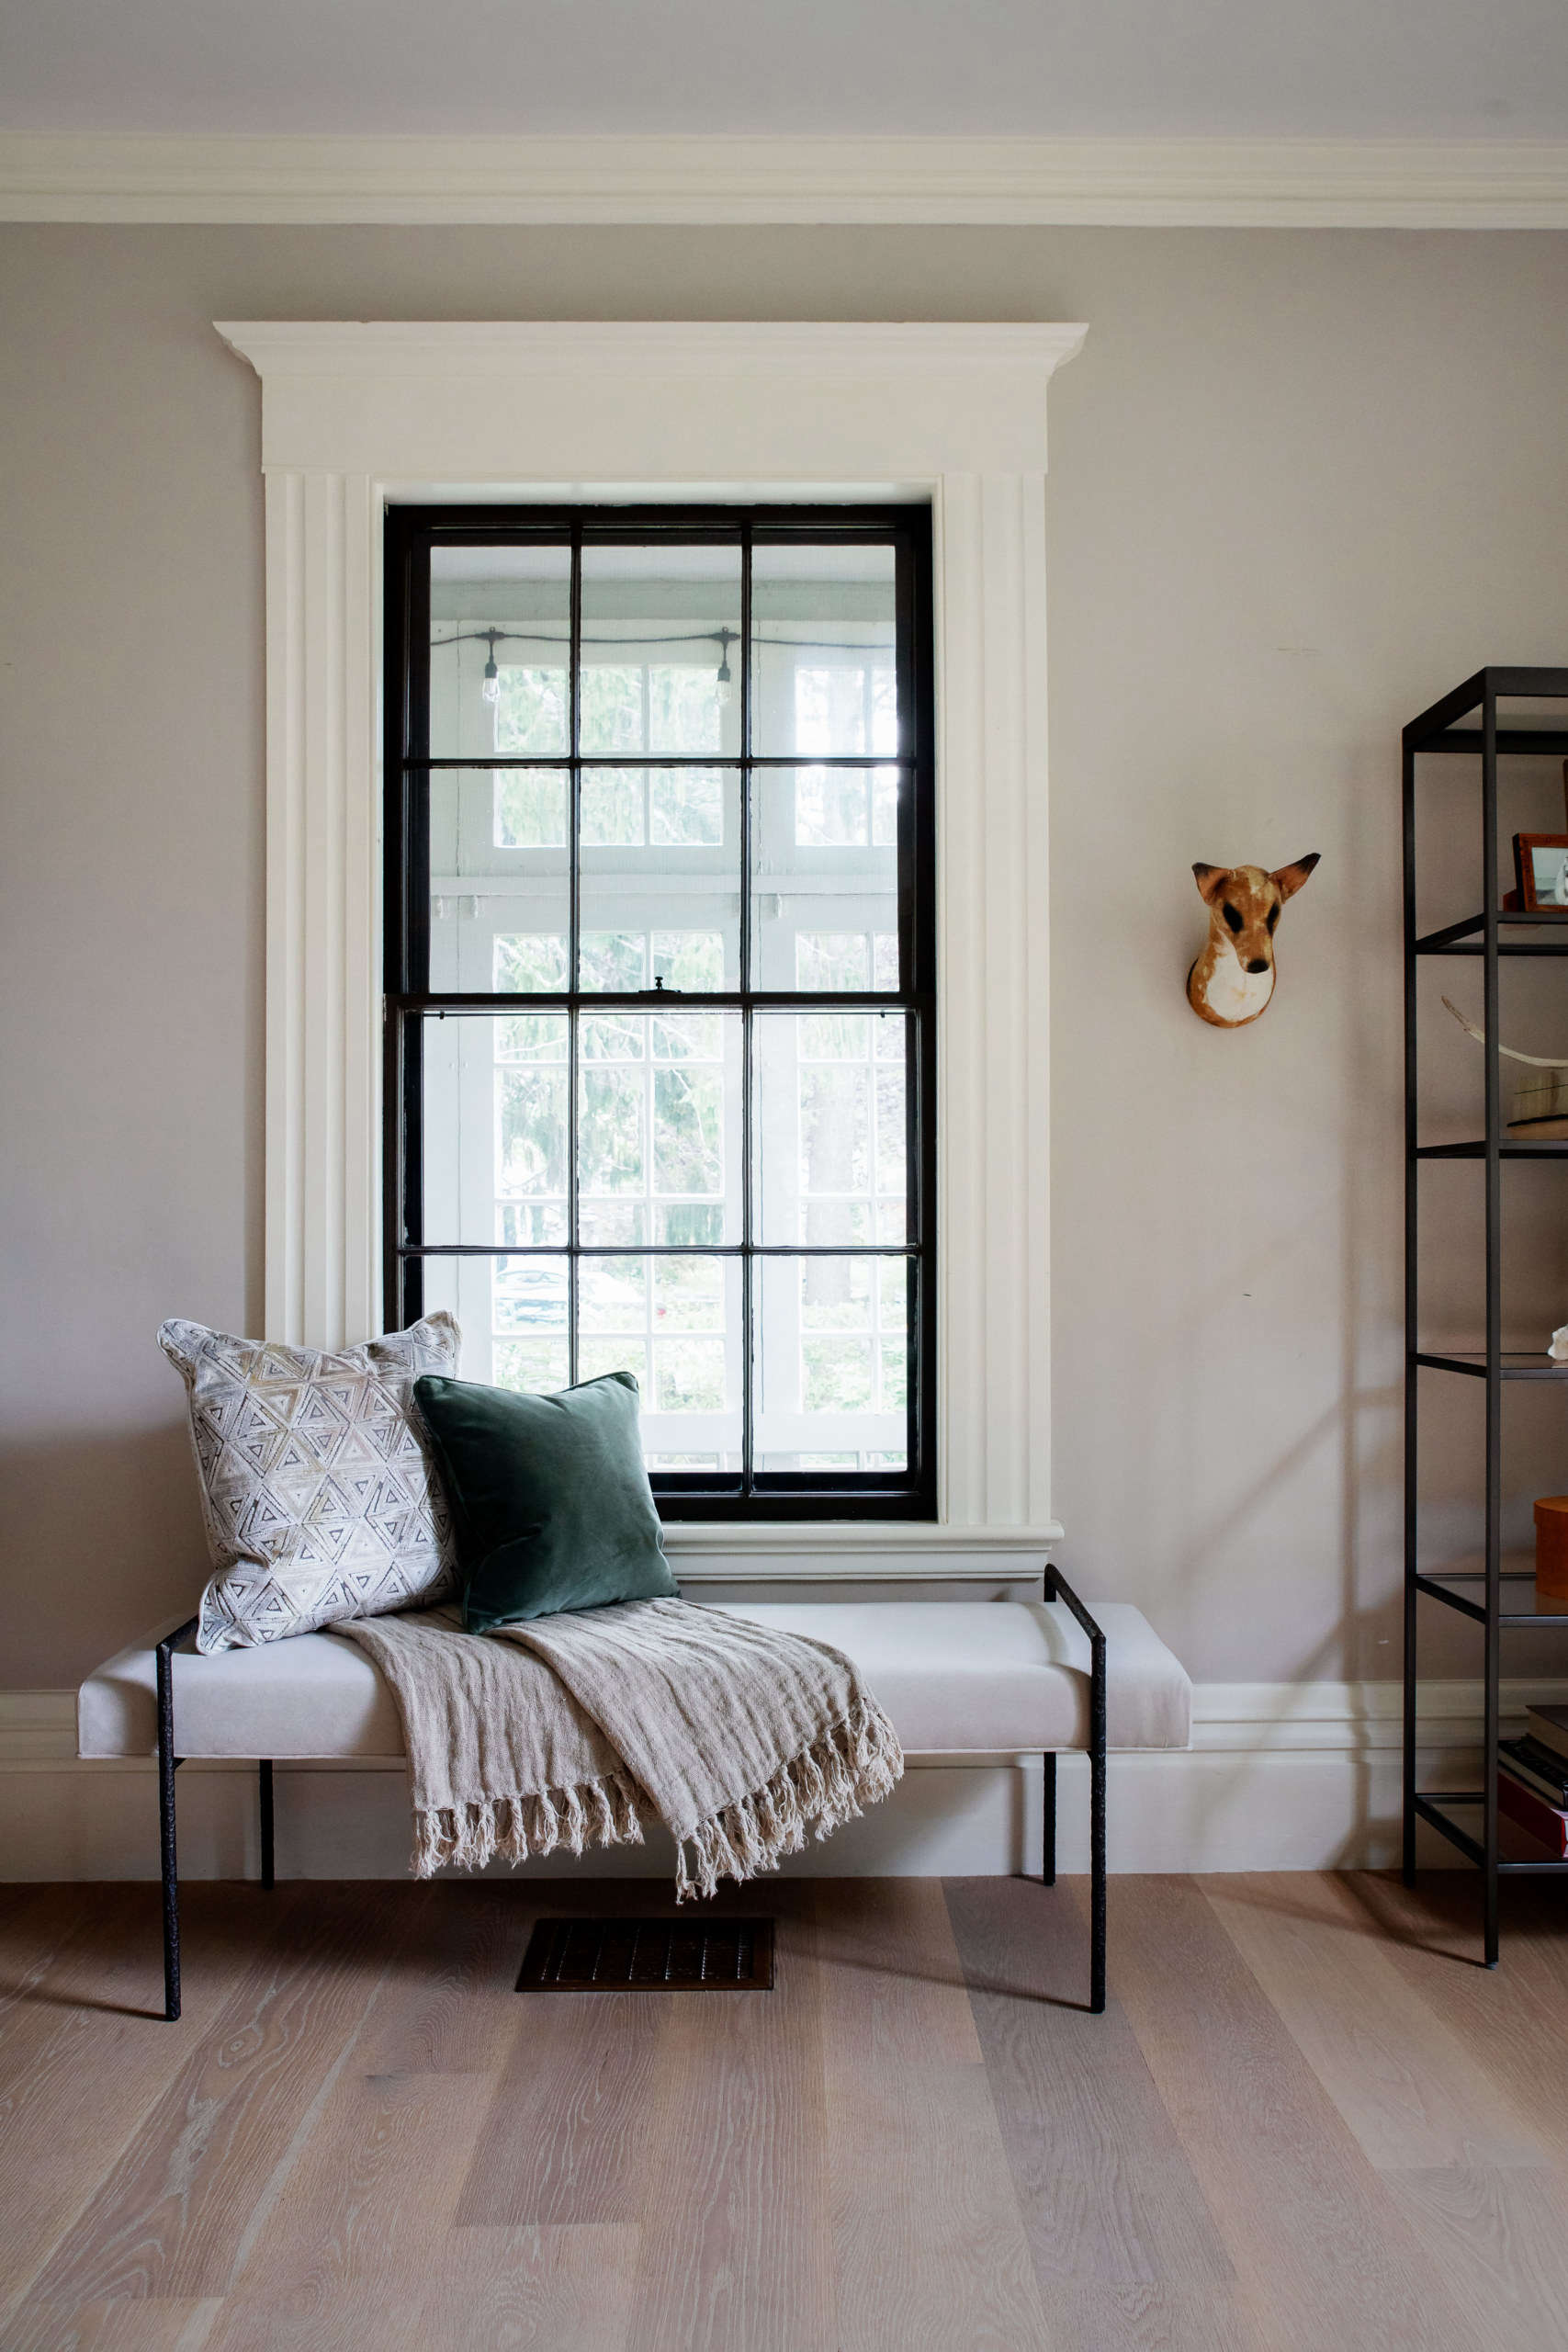 """The Yves Bench Ottoman—trimly sized to fit beneath a window, entryway, or at the end of a bed—makes for a cozy reading spot. It has a textured handmade frame finished in burnished bronze, and each piece is one of a kind. """"We want our collection to help people express their individuality and make their homes reflect them,"""" says Allison, and many pieces are customizable. """"For the Yves Bench, as with all our upholstery, you can choose from over 40 leathers and over 575 fabrics, including performance fabrics that are so easy to live with."""" On the wall is Justine's own fox bust by British textile artist Mister Finch (""""a prized possession,"""" she says)."""